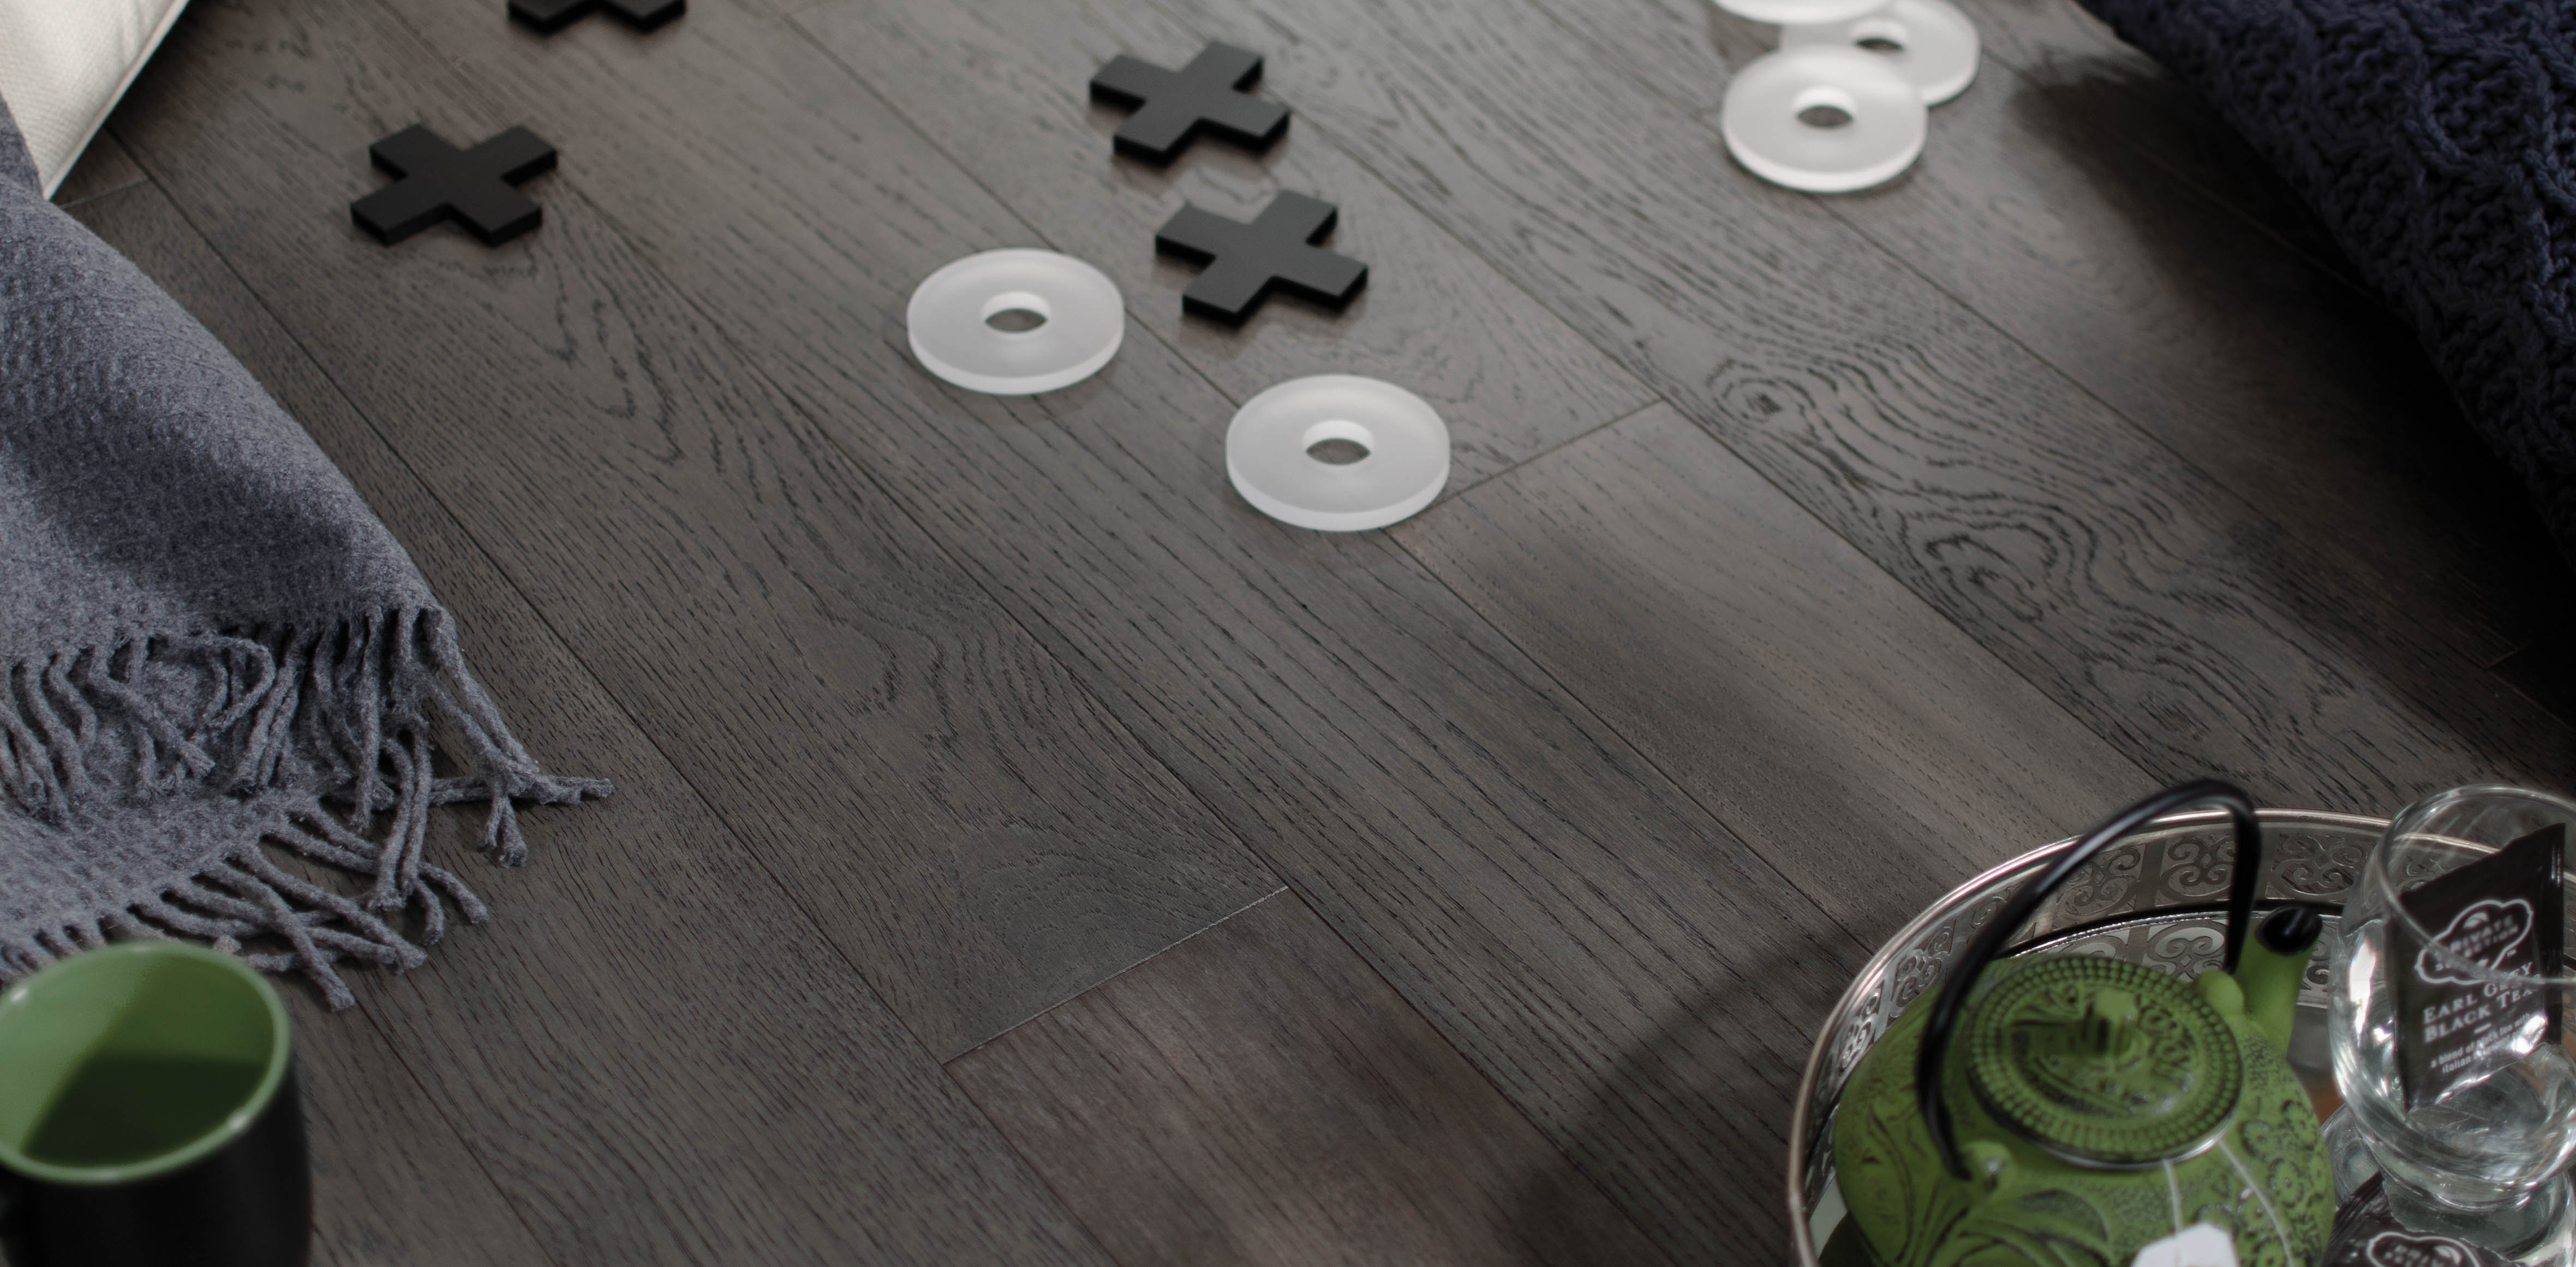 piedmont-hardwood-flooring-with-tic-tac-toe